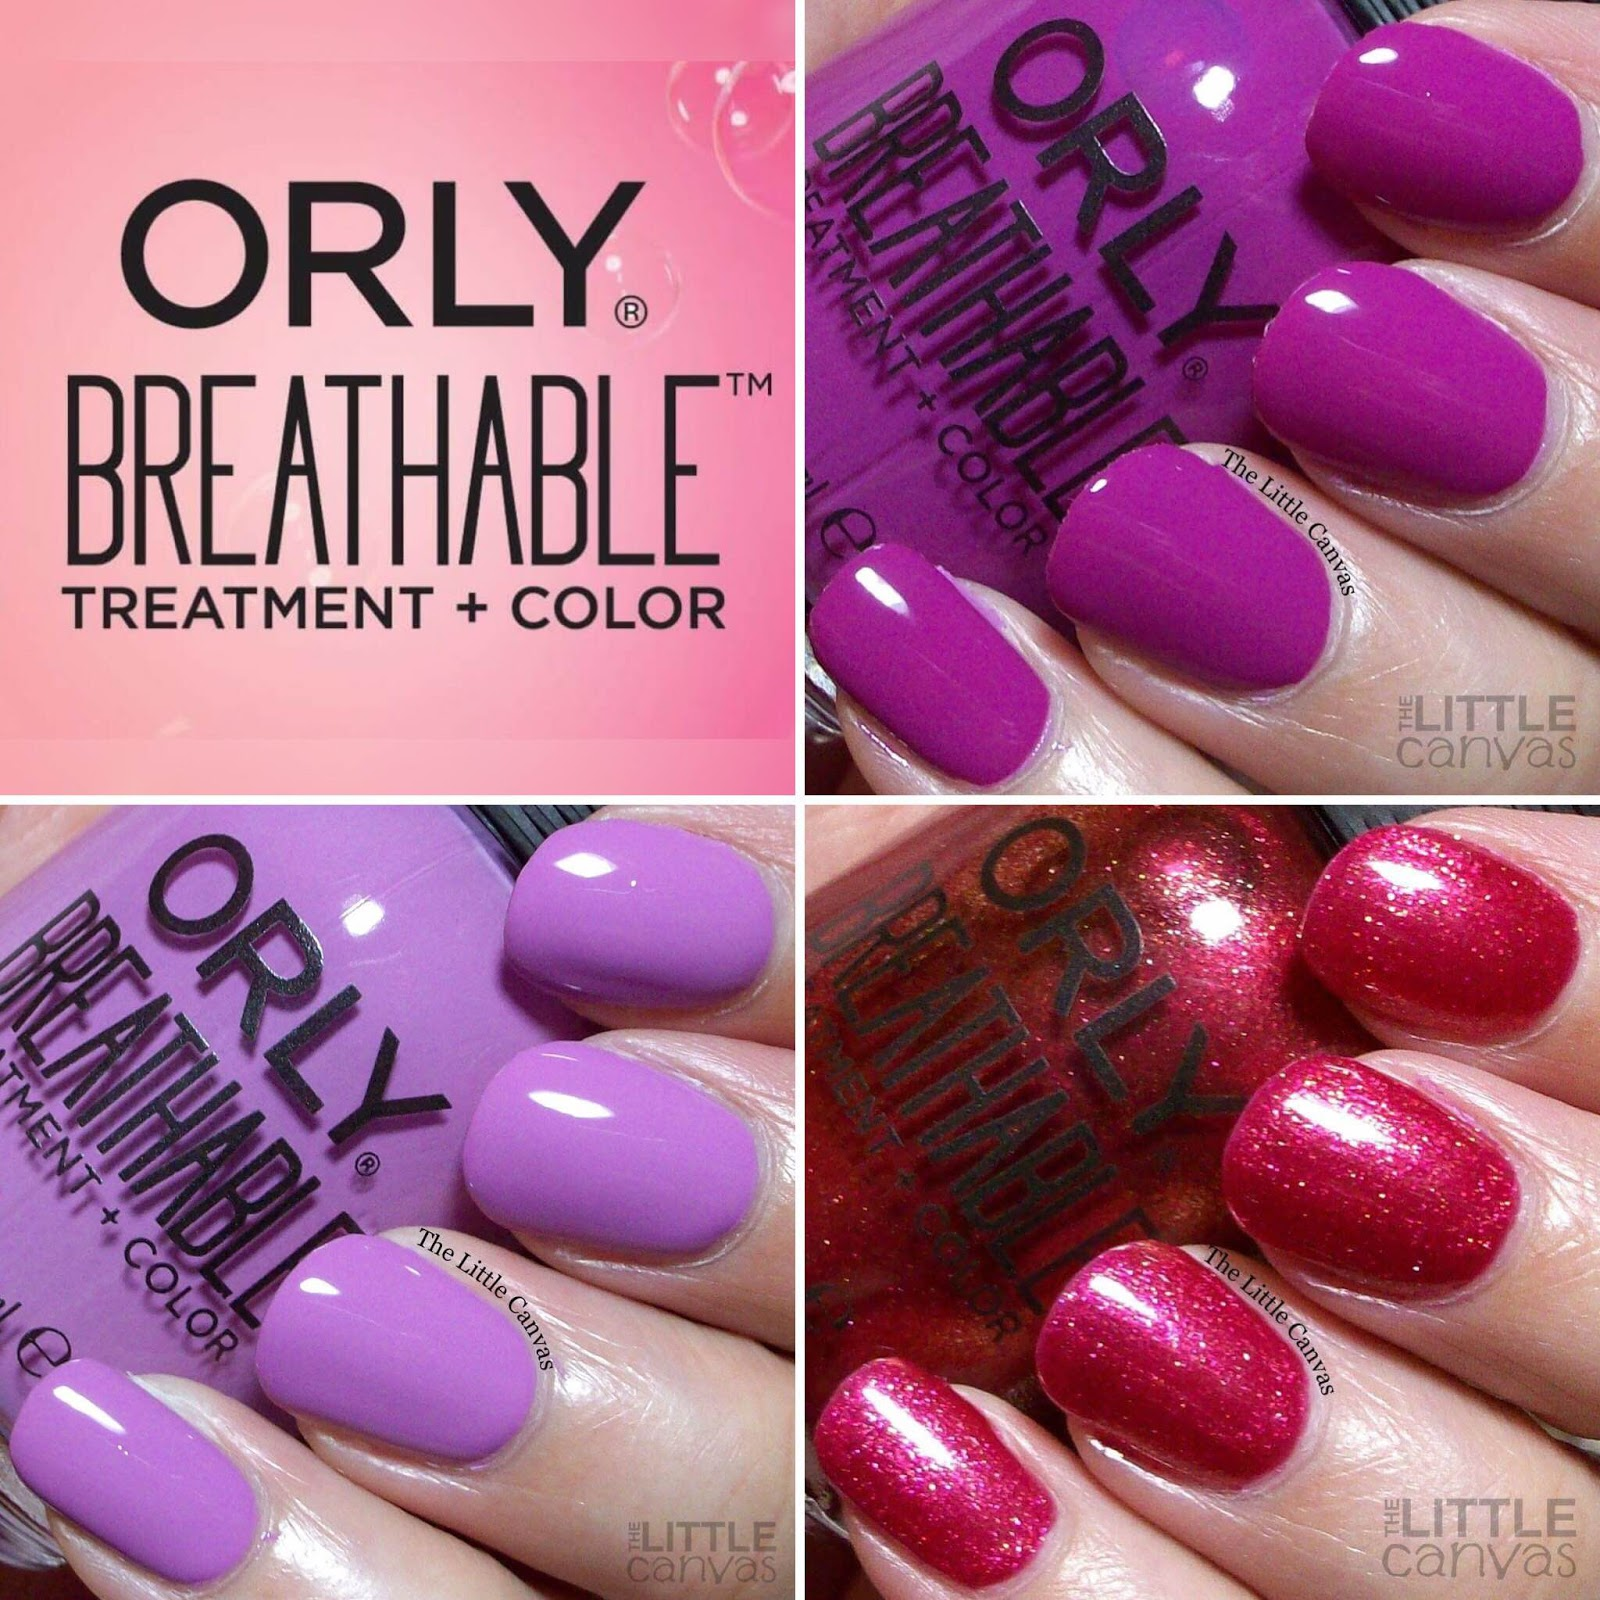 ORLY Breathable Treatment + Color Swatch and Review - The Little Canvas